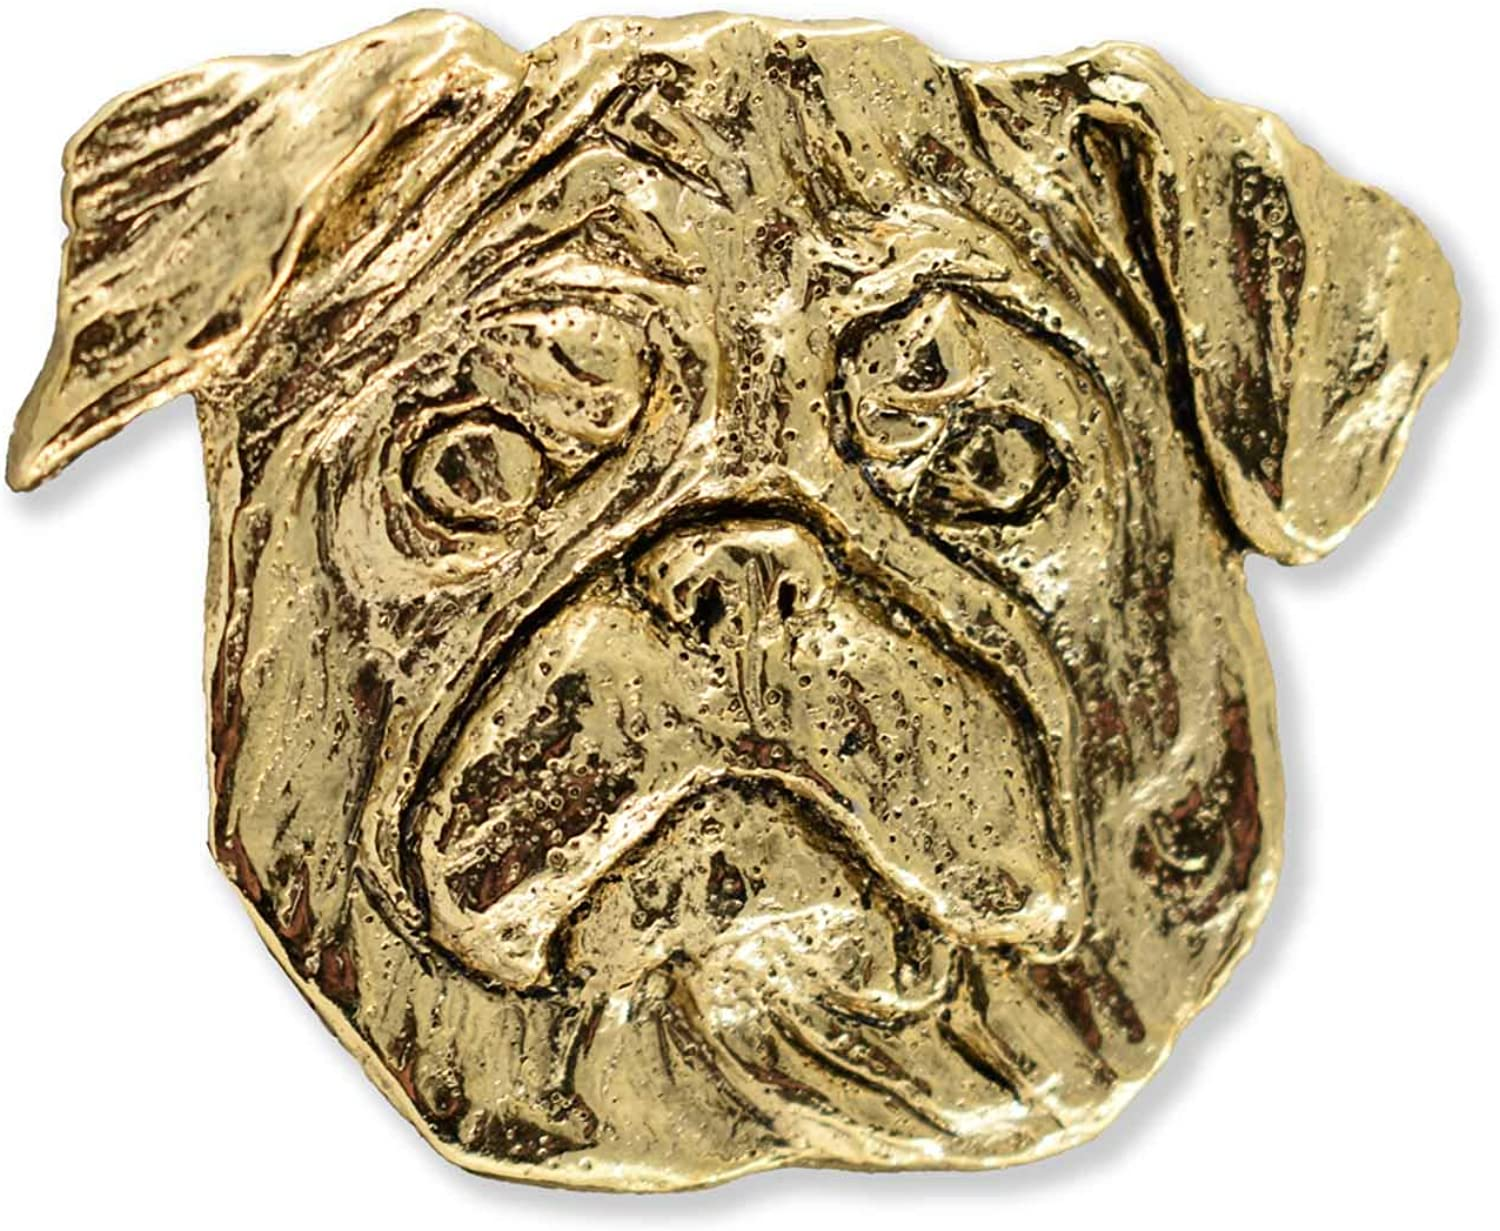 All Pet Breeds Made in USA Realistic Dog Lapel Pin Brooch Lead Free Antique Pewter